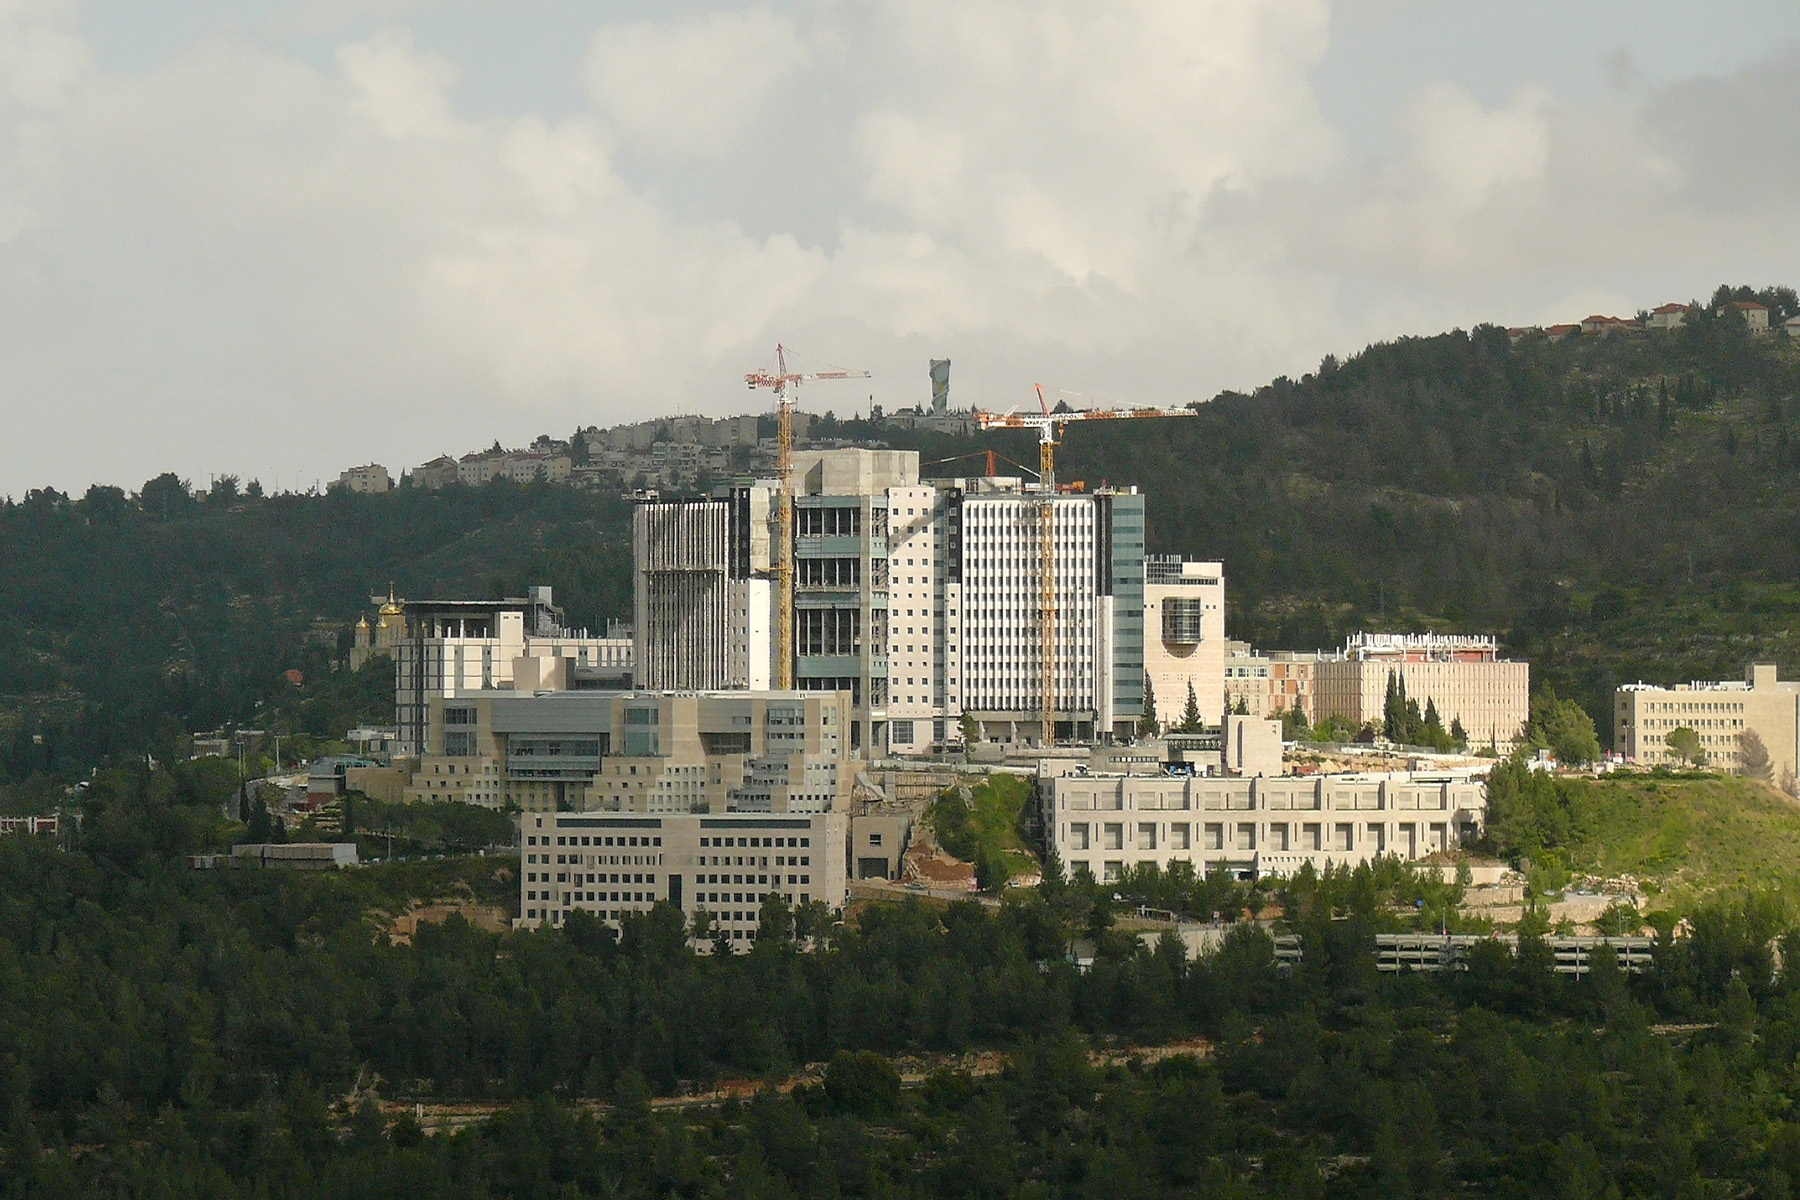 Hadassah Ein Kerem: The Sarah Wetsman Davidson Tower